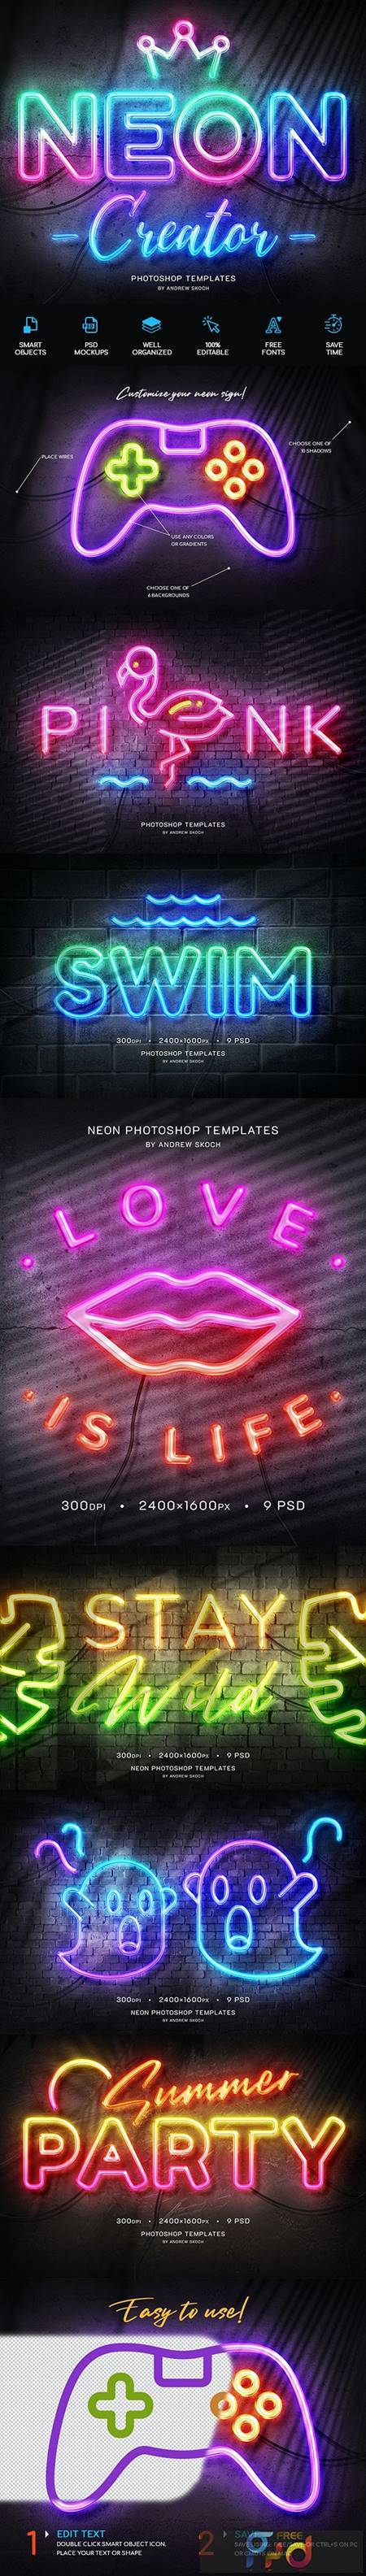 Neon Wall Sign Templates 27858499 1